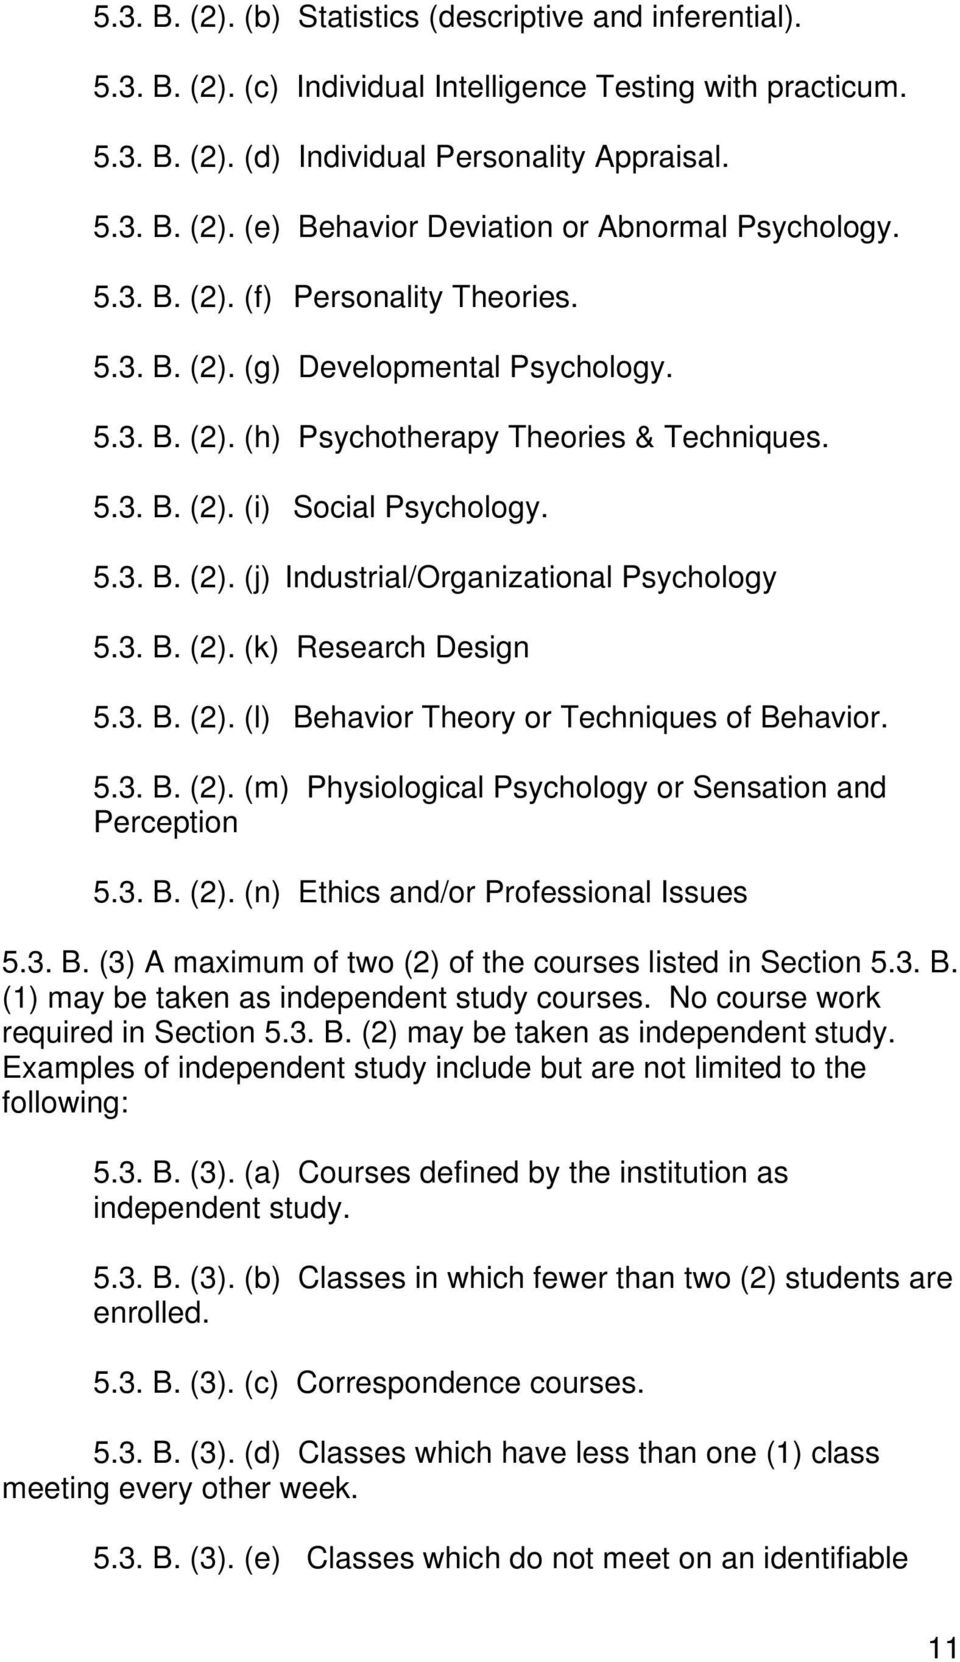 3. B. (2). (k) Research Design 5.3. B. (2). (l) Behavior Theory or Techniques of Behavior. 5.3. B. (2). (m) Physiological Psychology or Sensation and Perception 5.3. B. (2). (n) Ethics and/or Professional Issues 5.